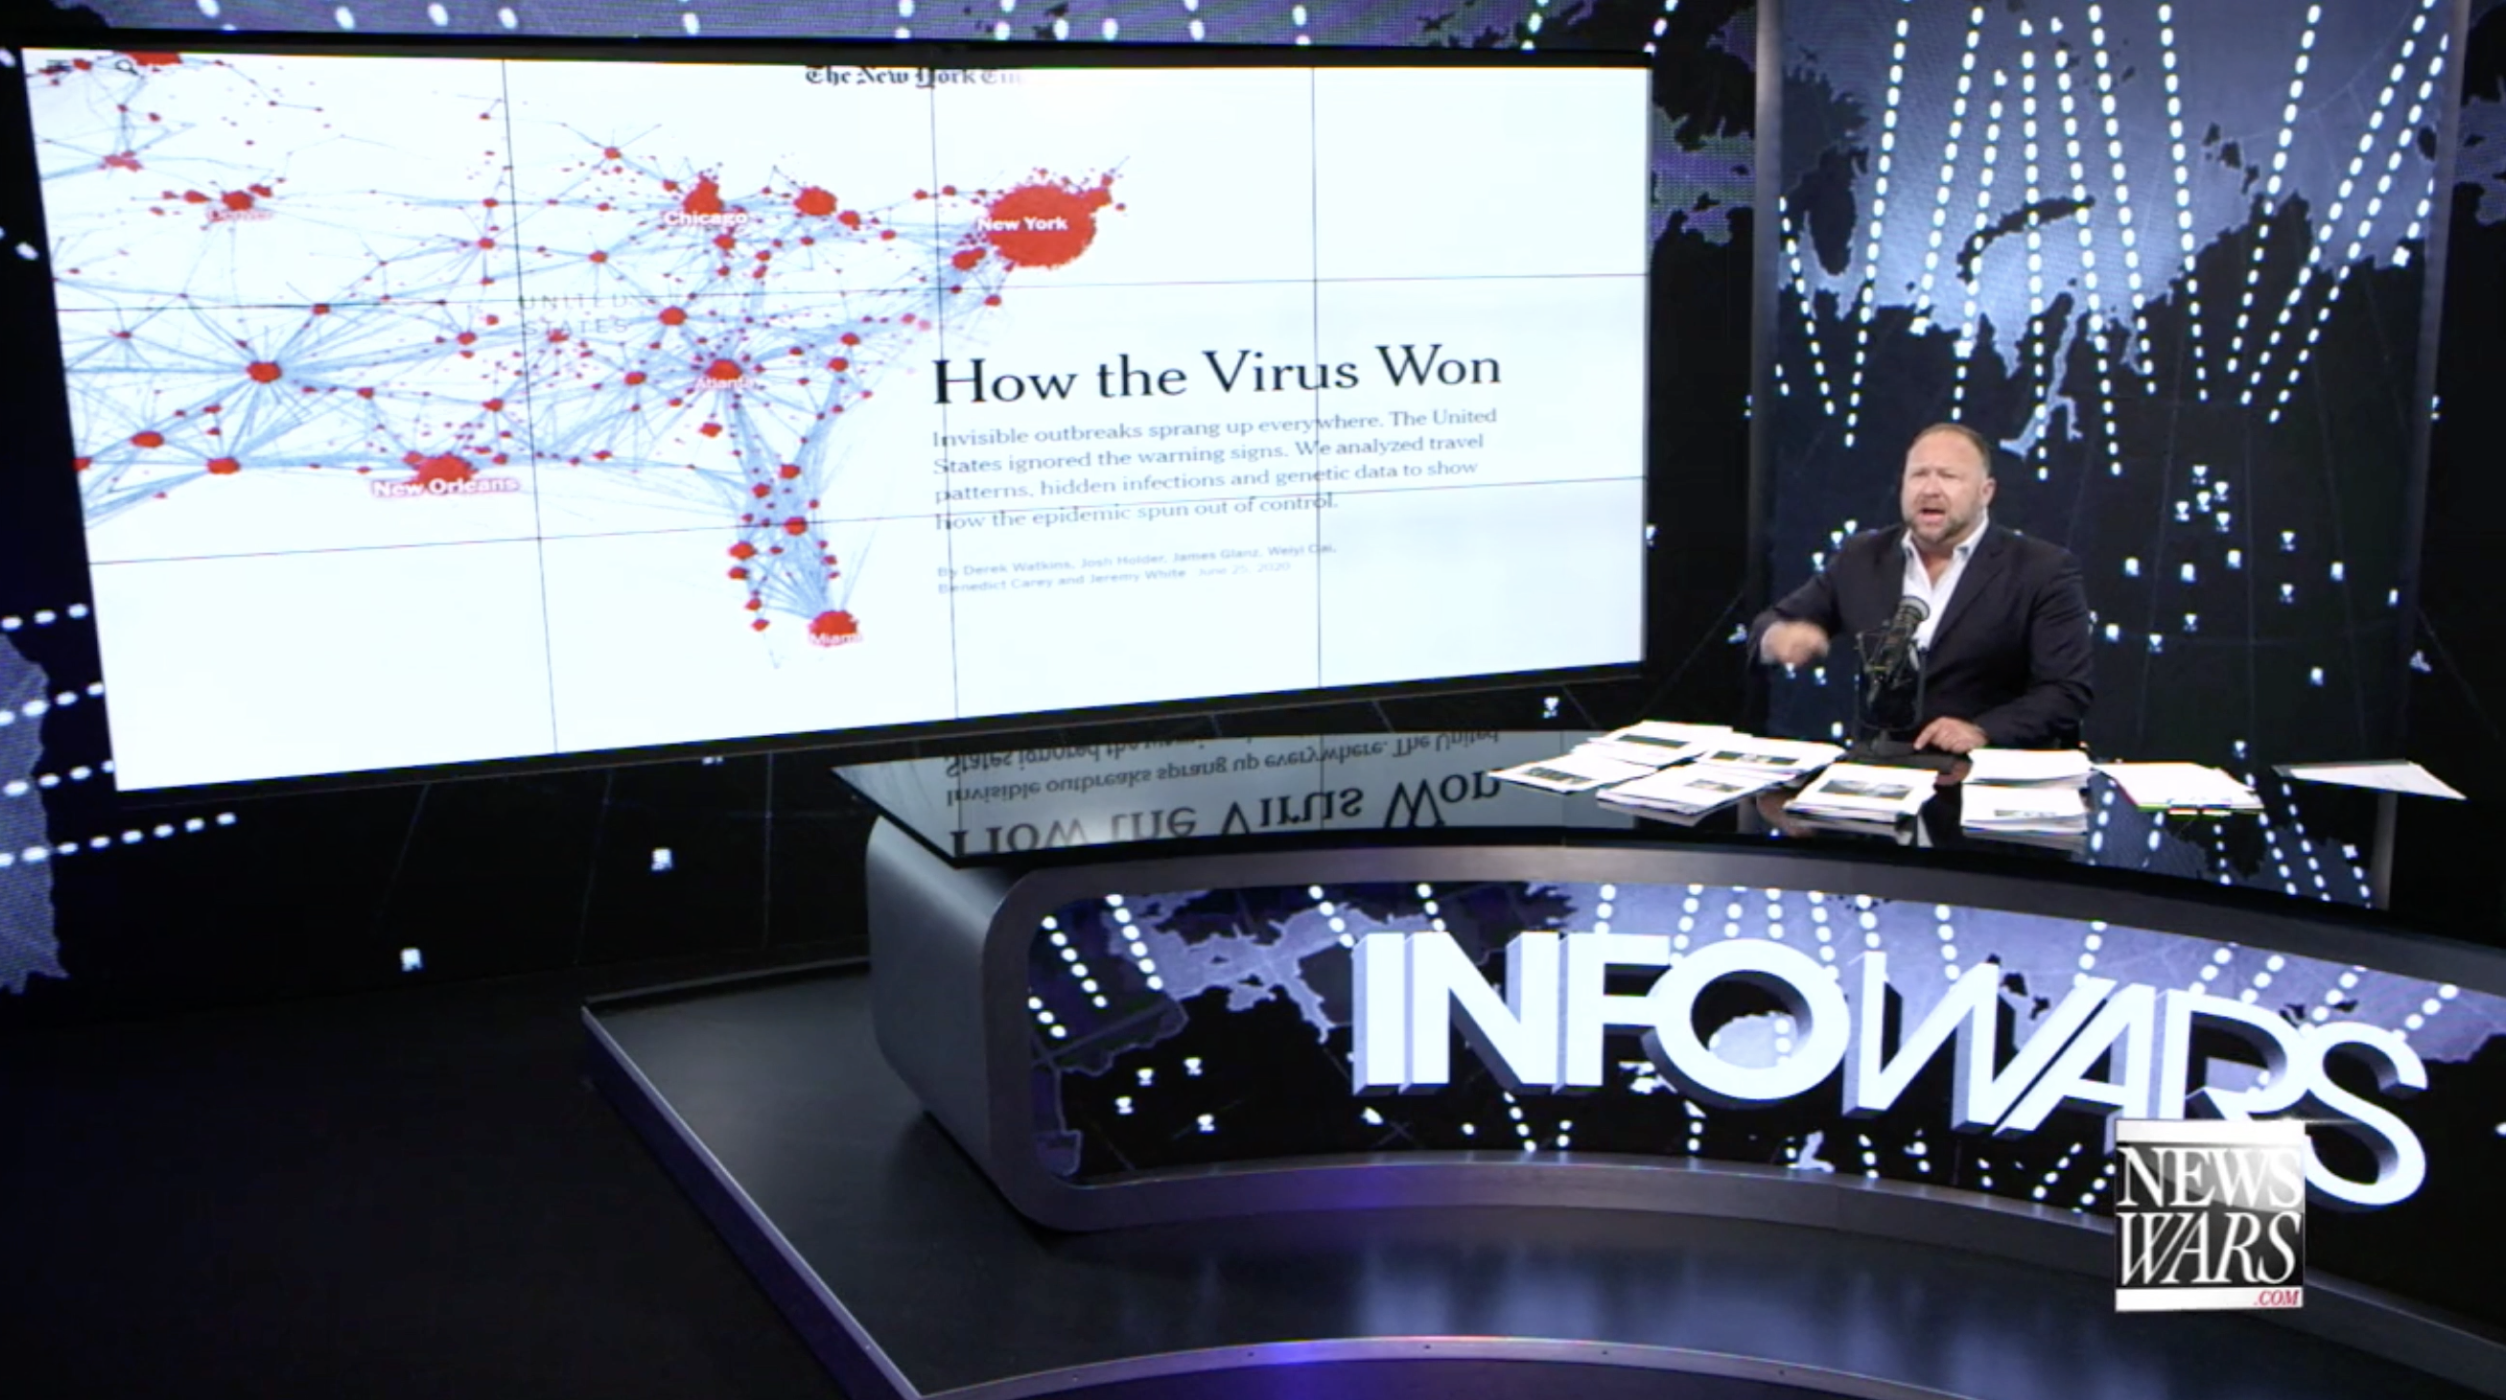 Alex Jones Infowars How Coronavirus Won 6 25 2020